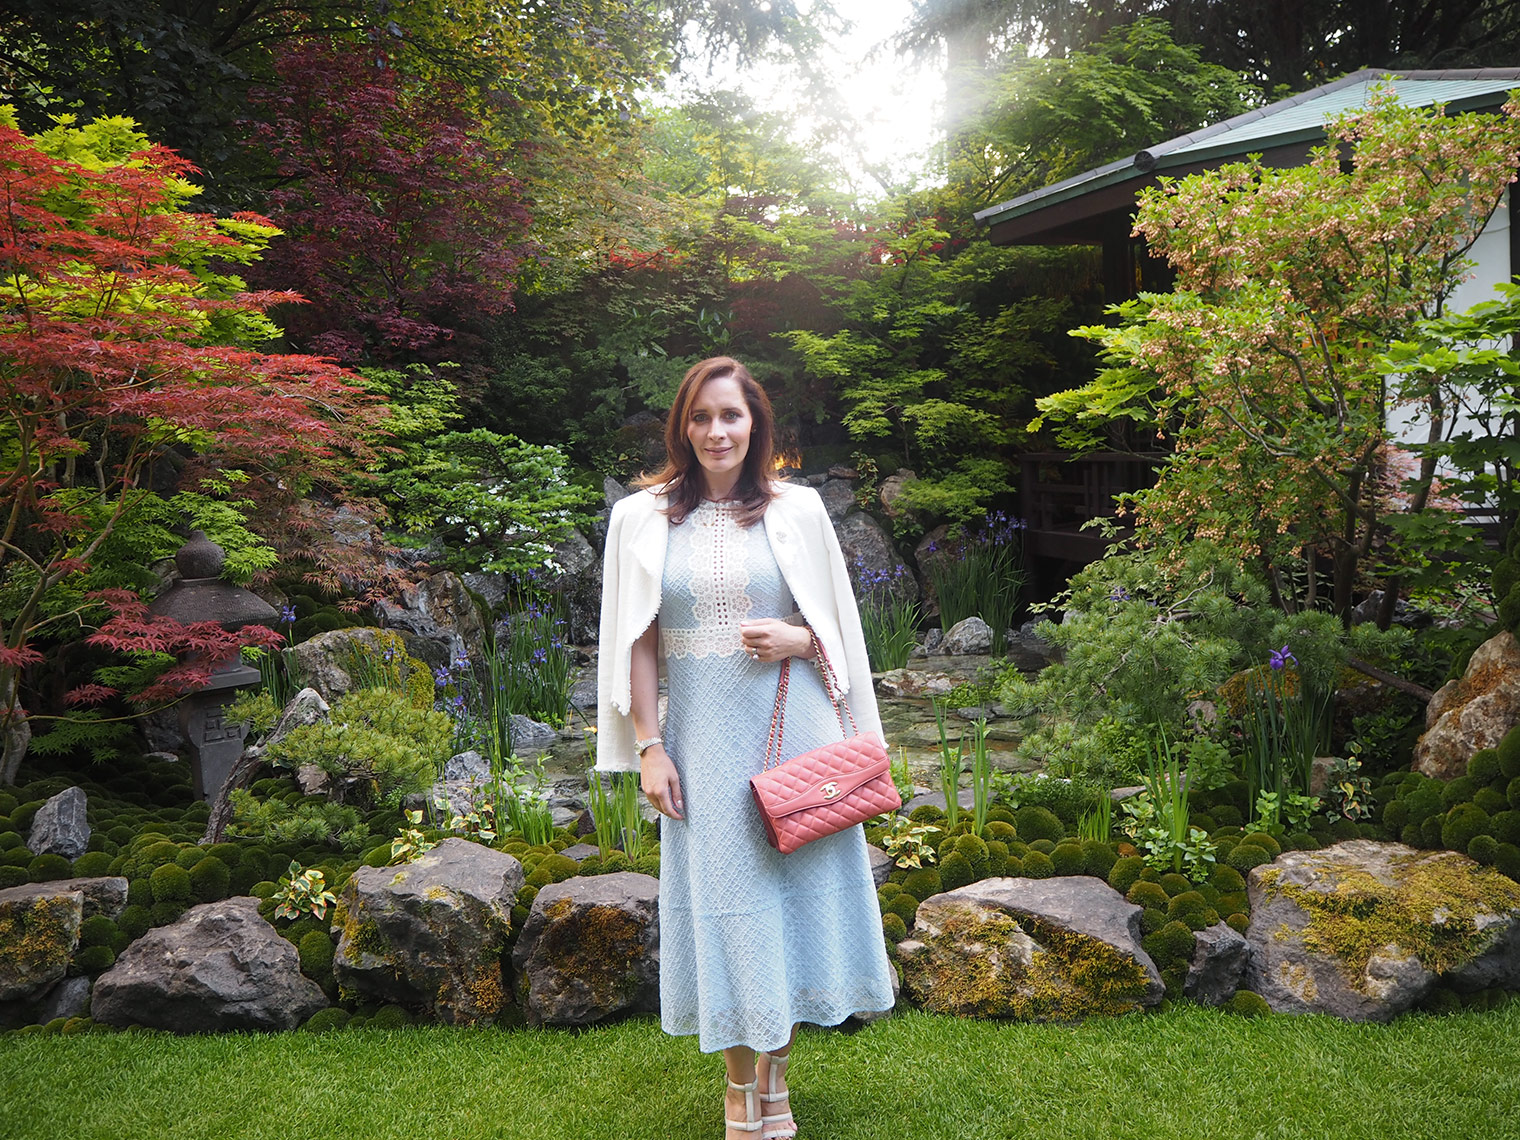 Chic Journal blogger Petra at Chelsea flower show preview 2018